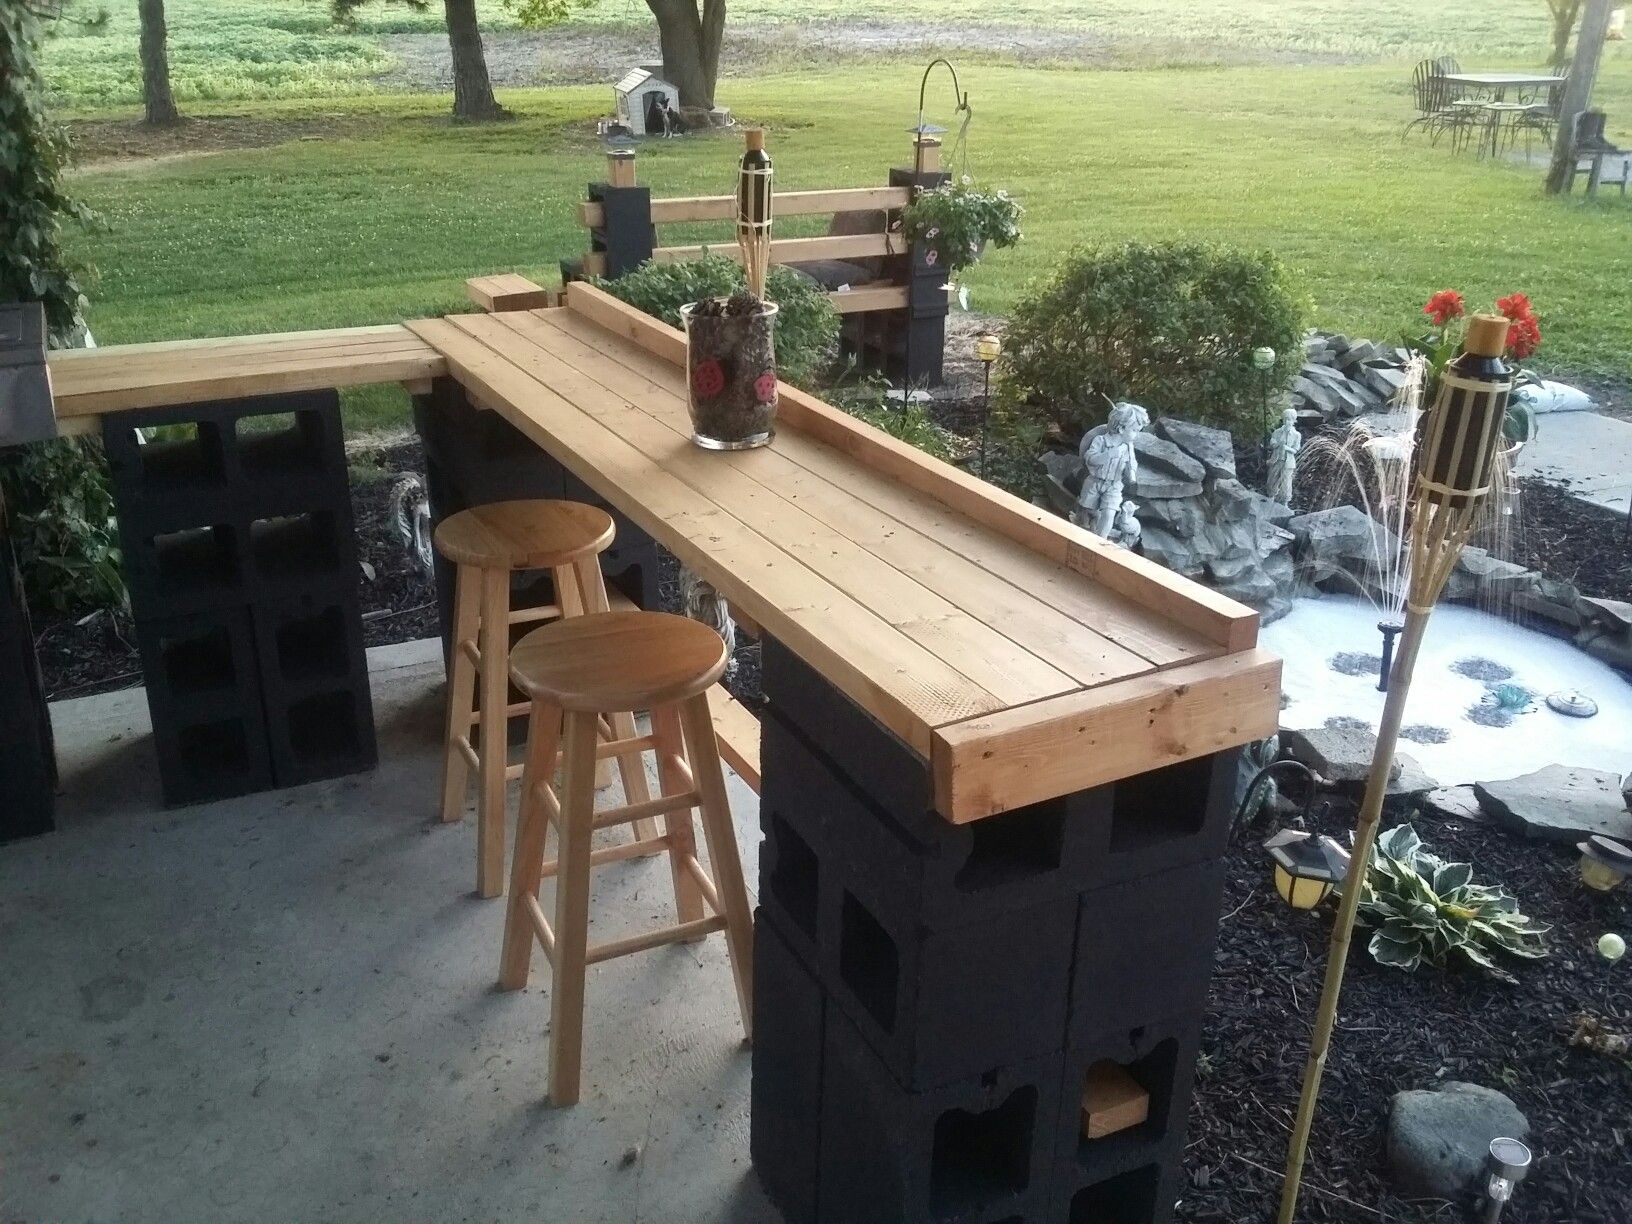 Backyard Patio Bar 12+ creative outdoor bar ideas for your backyard inspiration